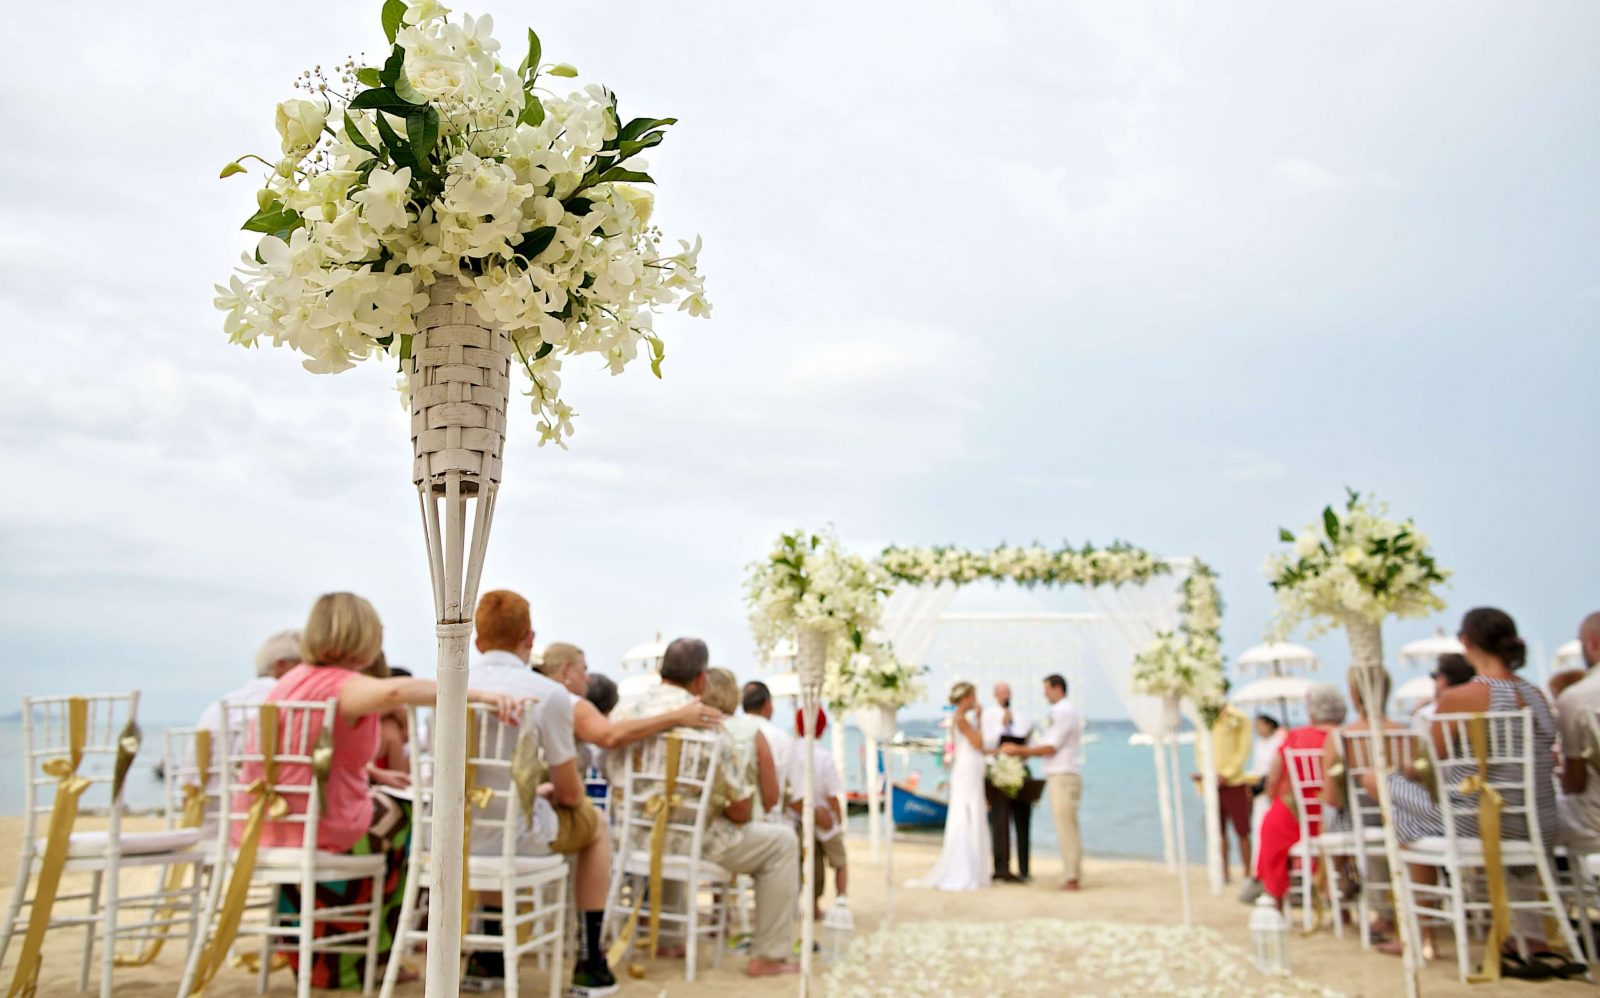 Plan your Dream Destination Wedding on a Budget